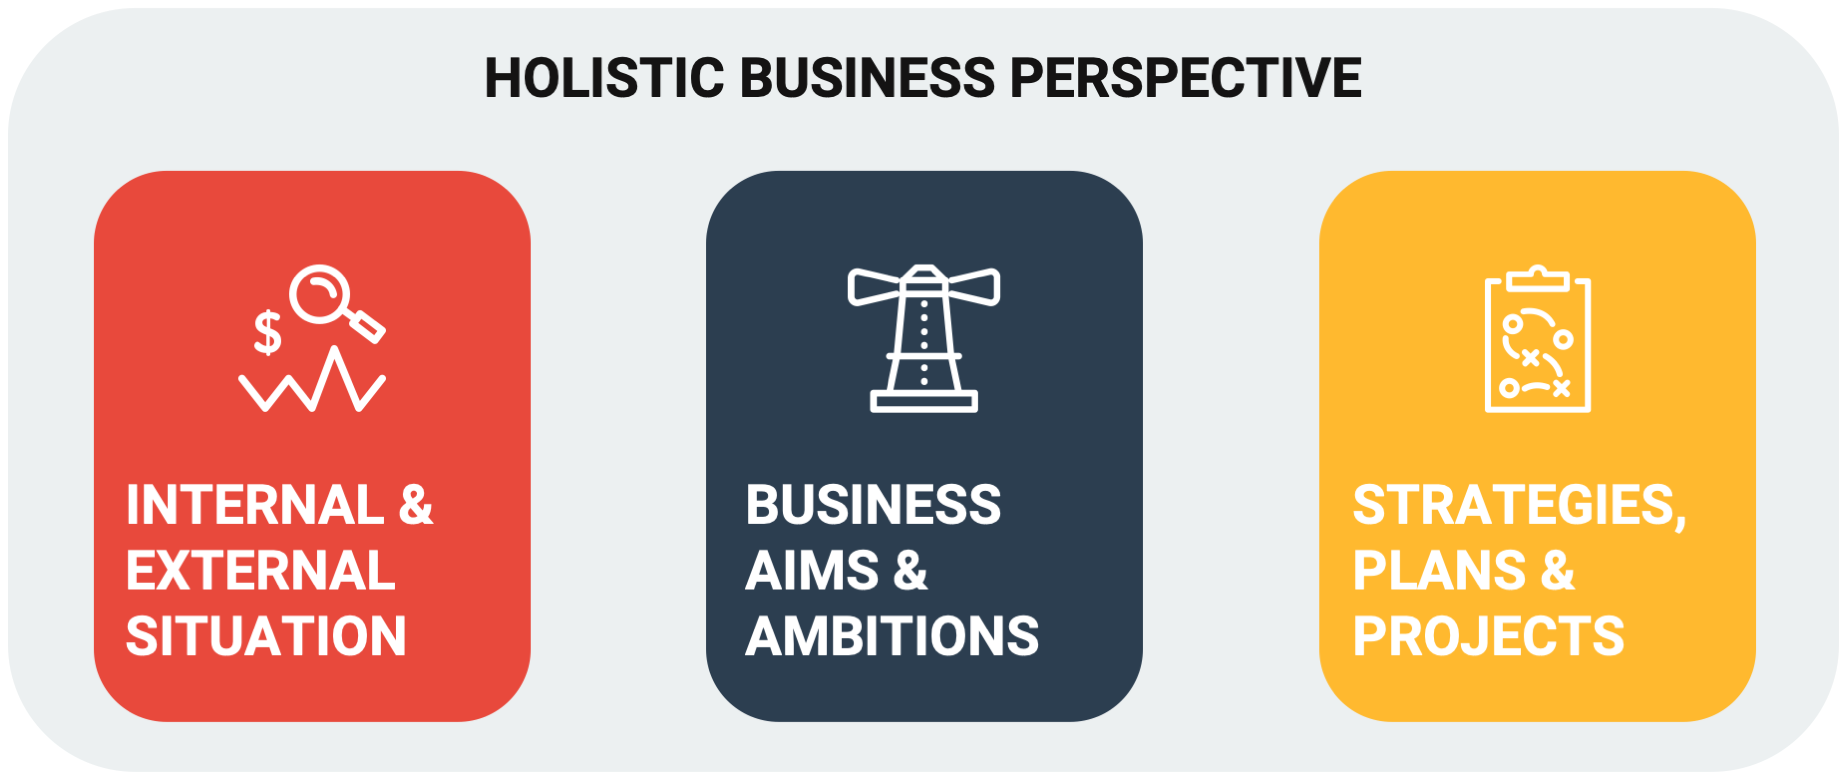 a holistic business perspective is an approach in which you actively respond to the business as a whole